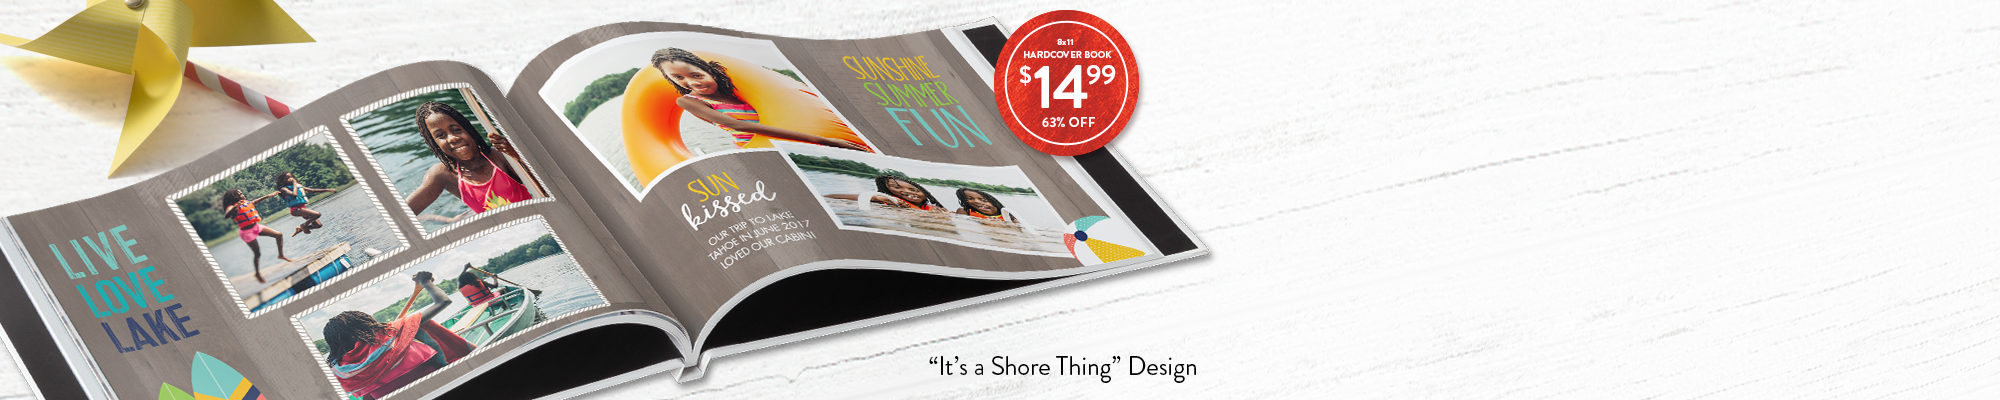 Photo Books Pool days, vacays, summer soirees, hooray! Save 63% on our 8x11 Hardcover Photo Book, regularly $39.99, now $14.99! Use code 1499BKS